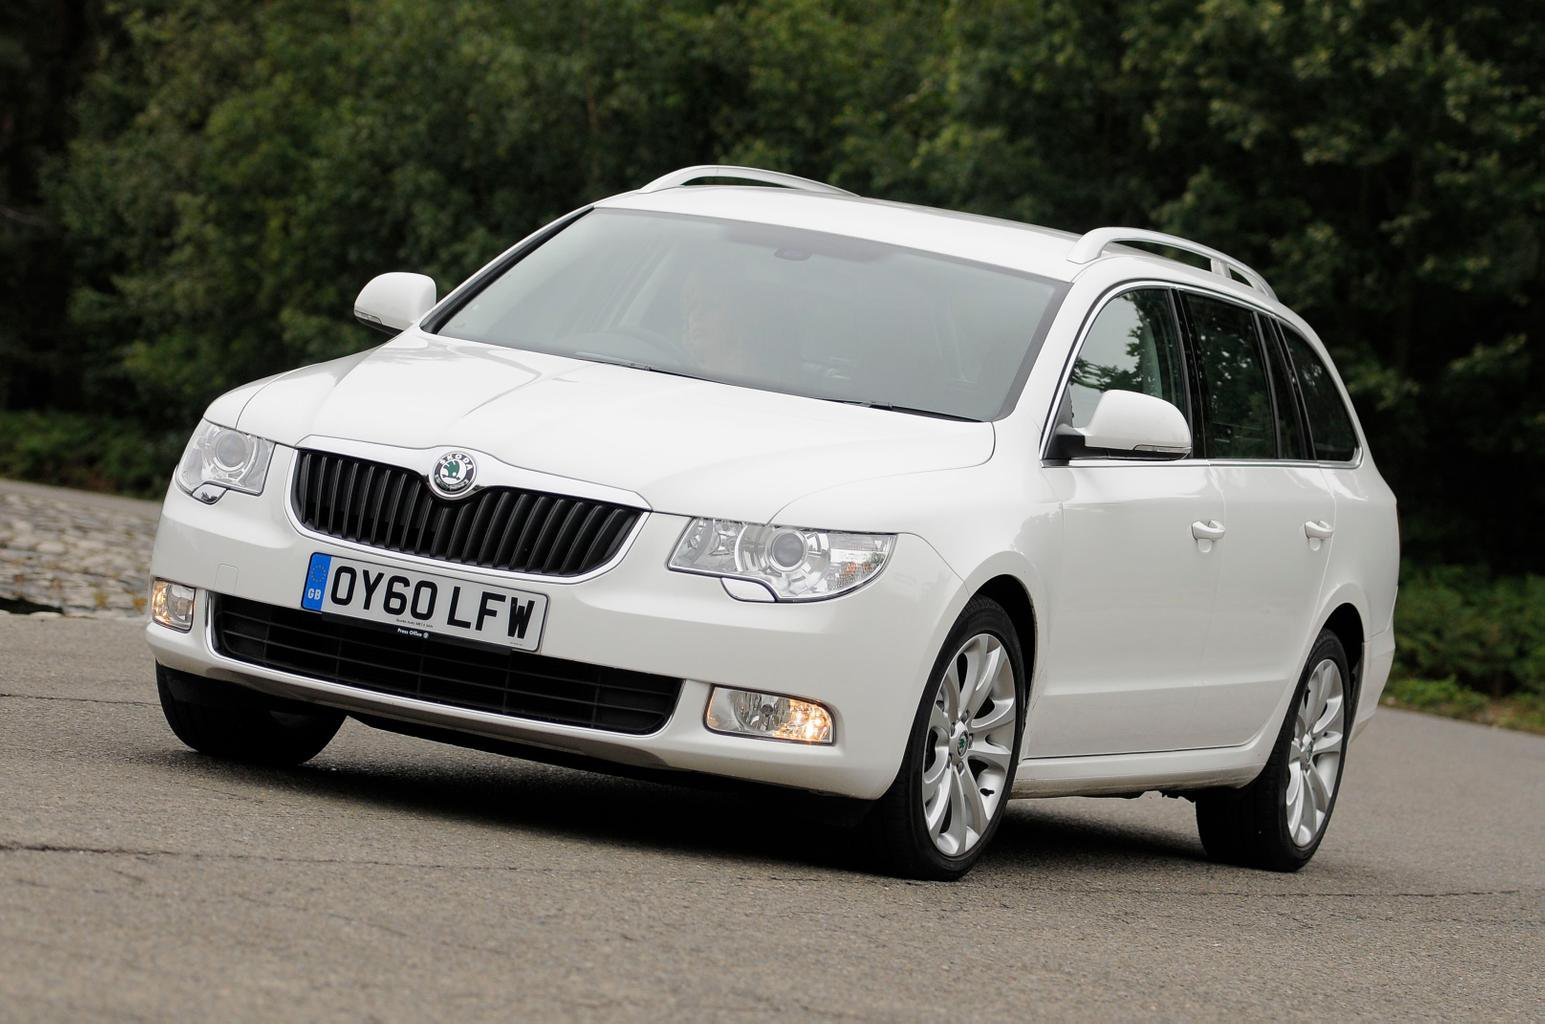 Used estate cars tested: Ford Mondeo vs Skoda Superb vs Peugeot 508